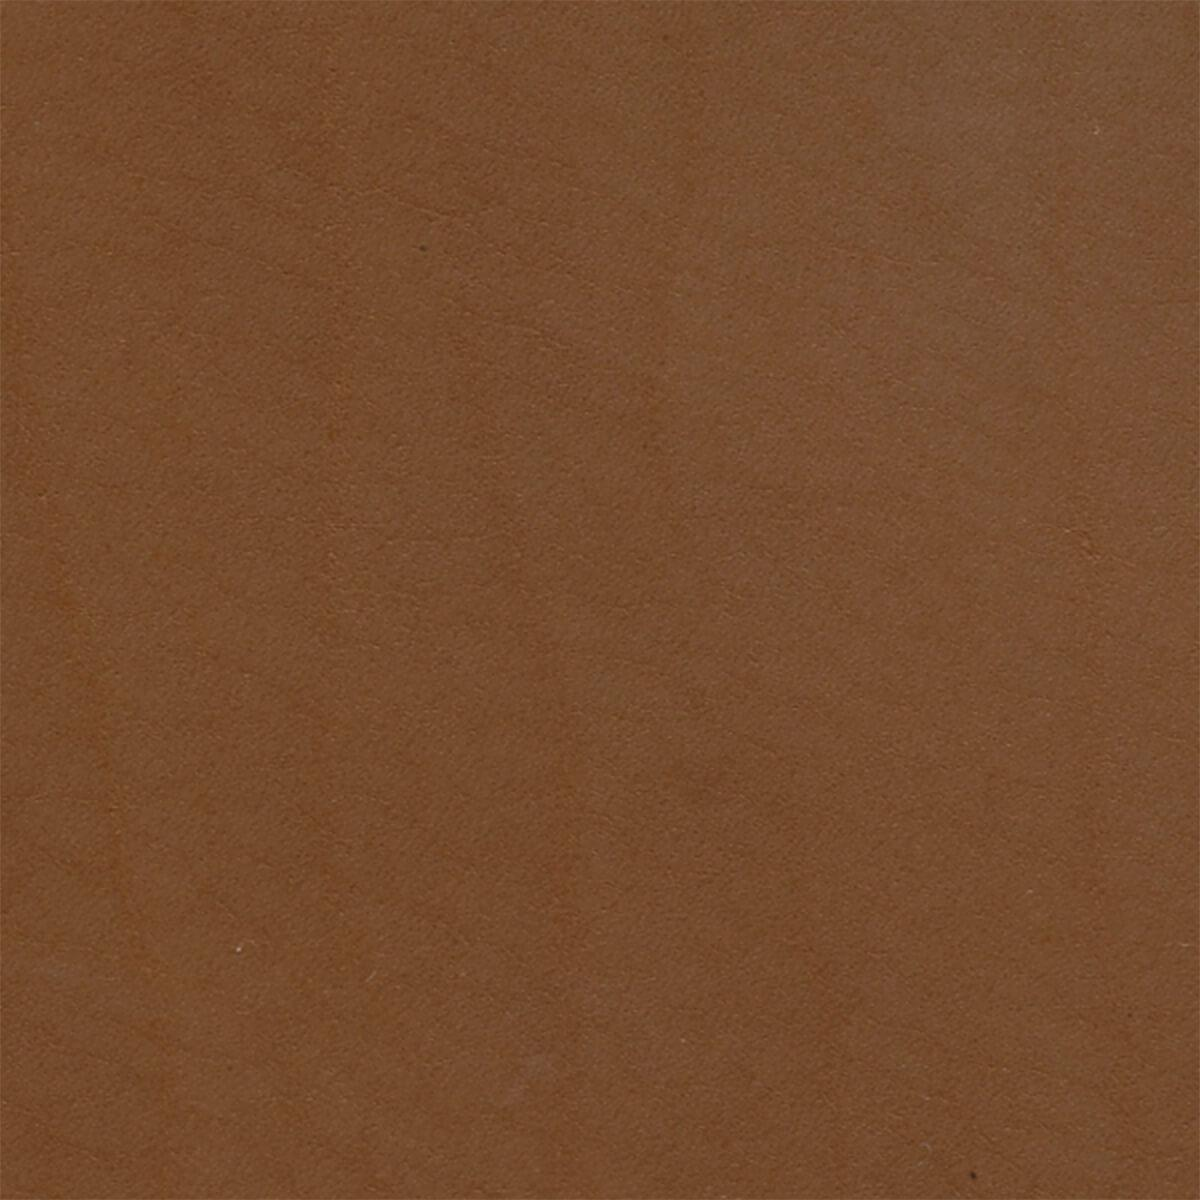 #2 Medium Brown